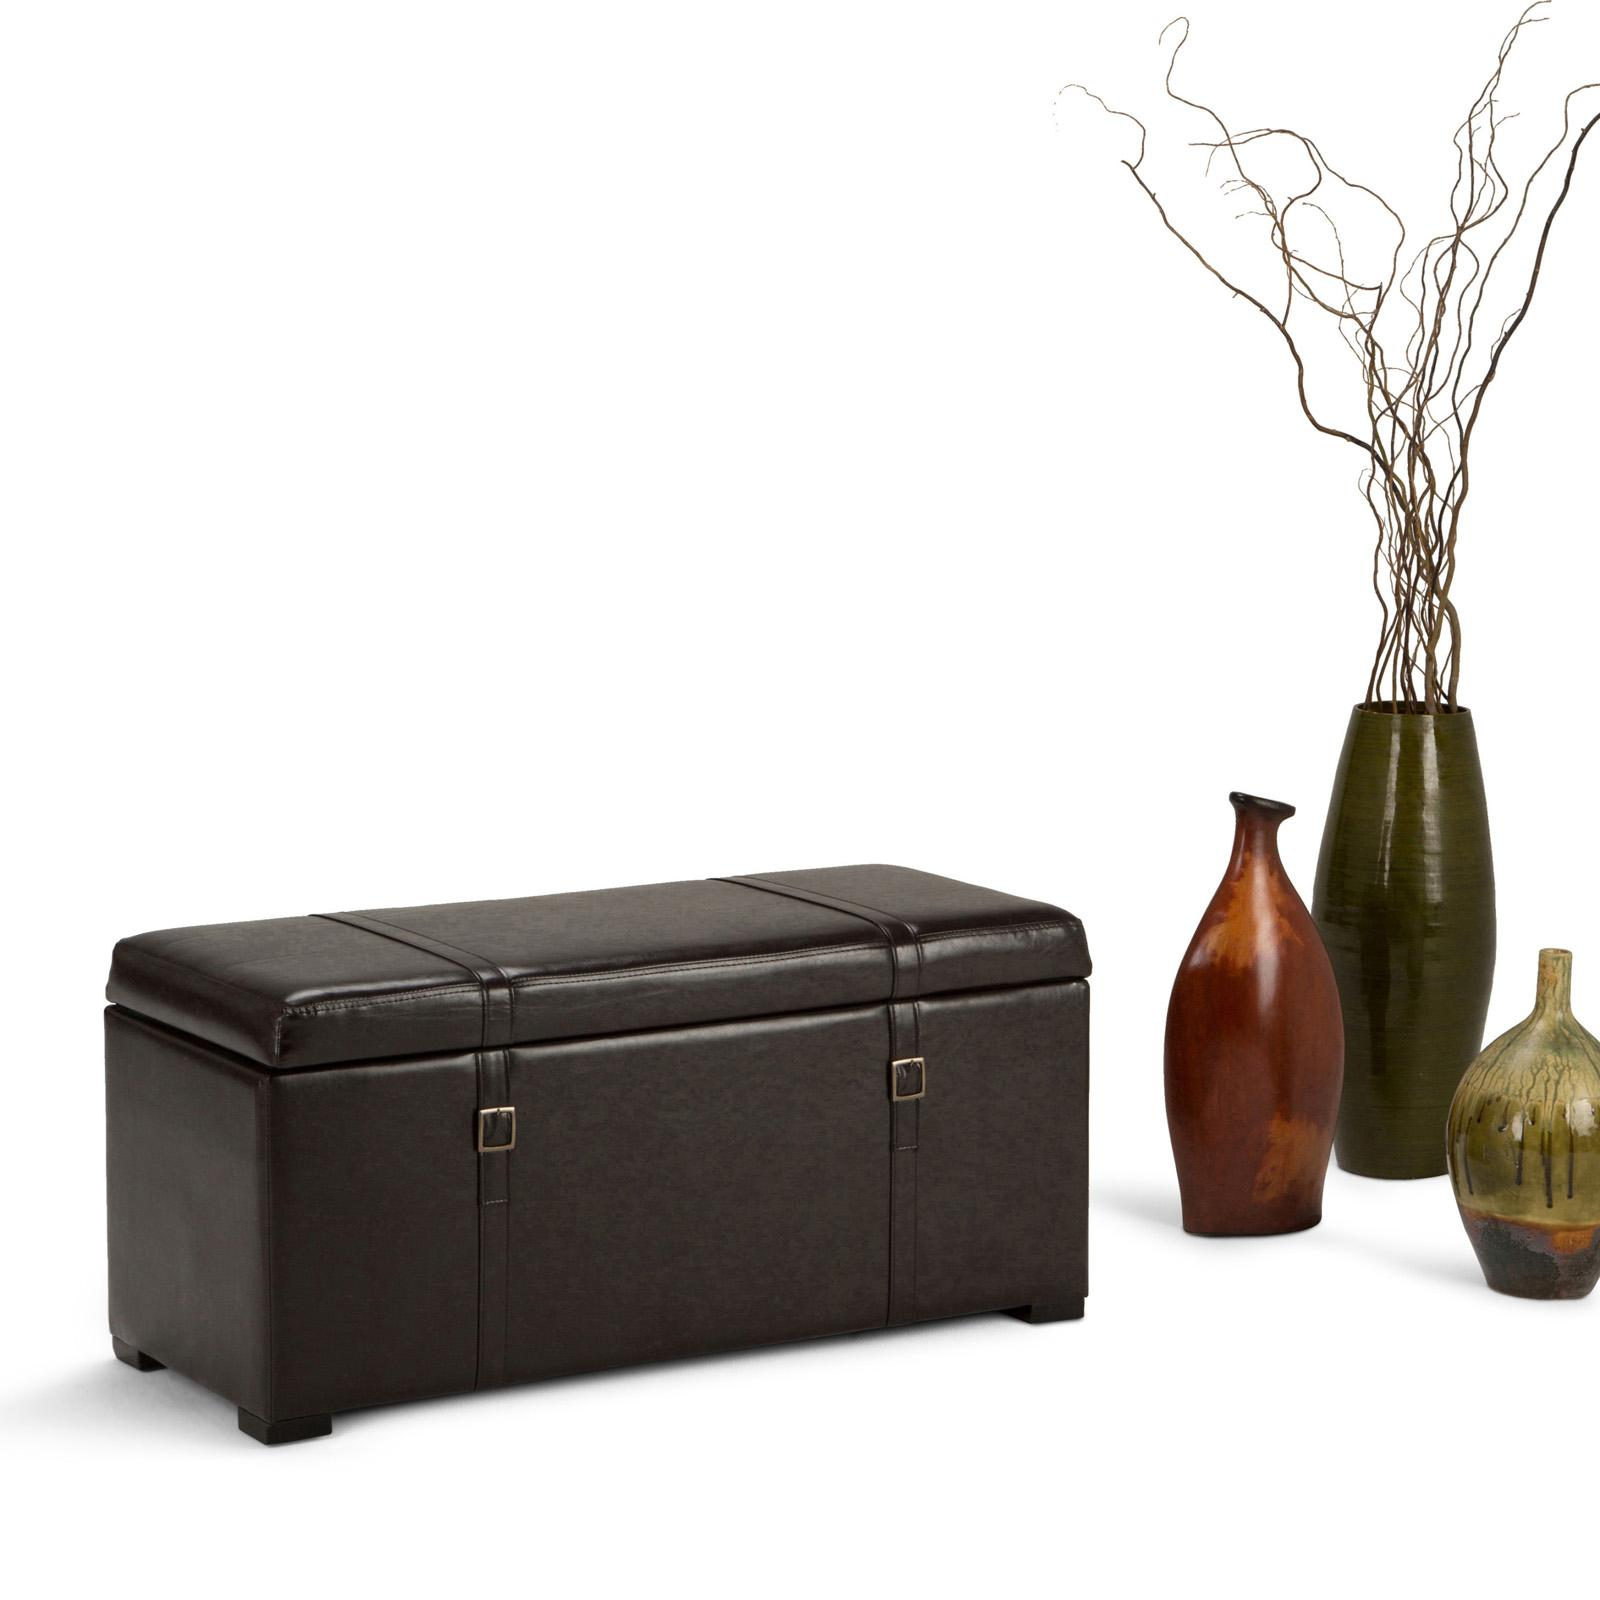 Simpli Home Dorchester 5 Piece Faux Leather Storage Bench and Ottoman Set - 3AXCOT-244-BR